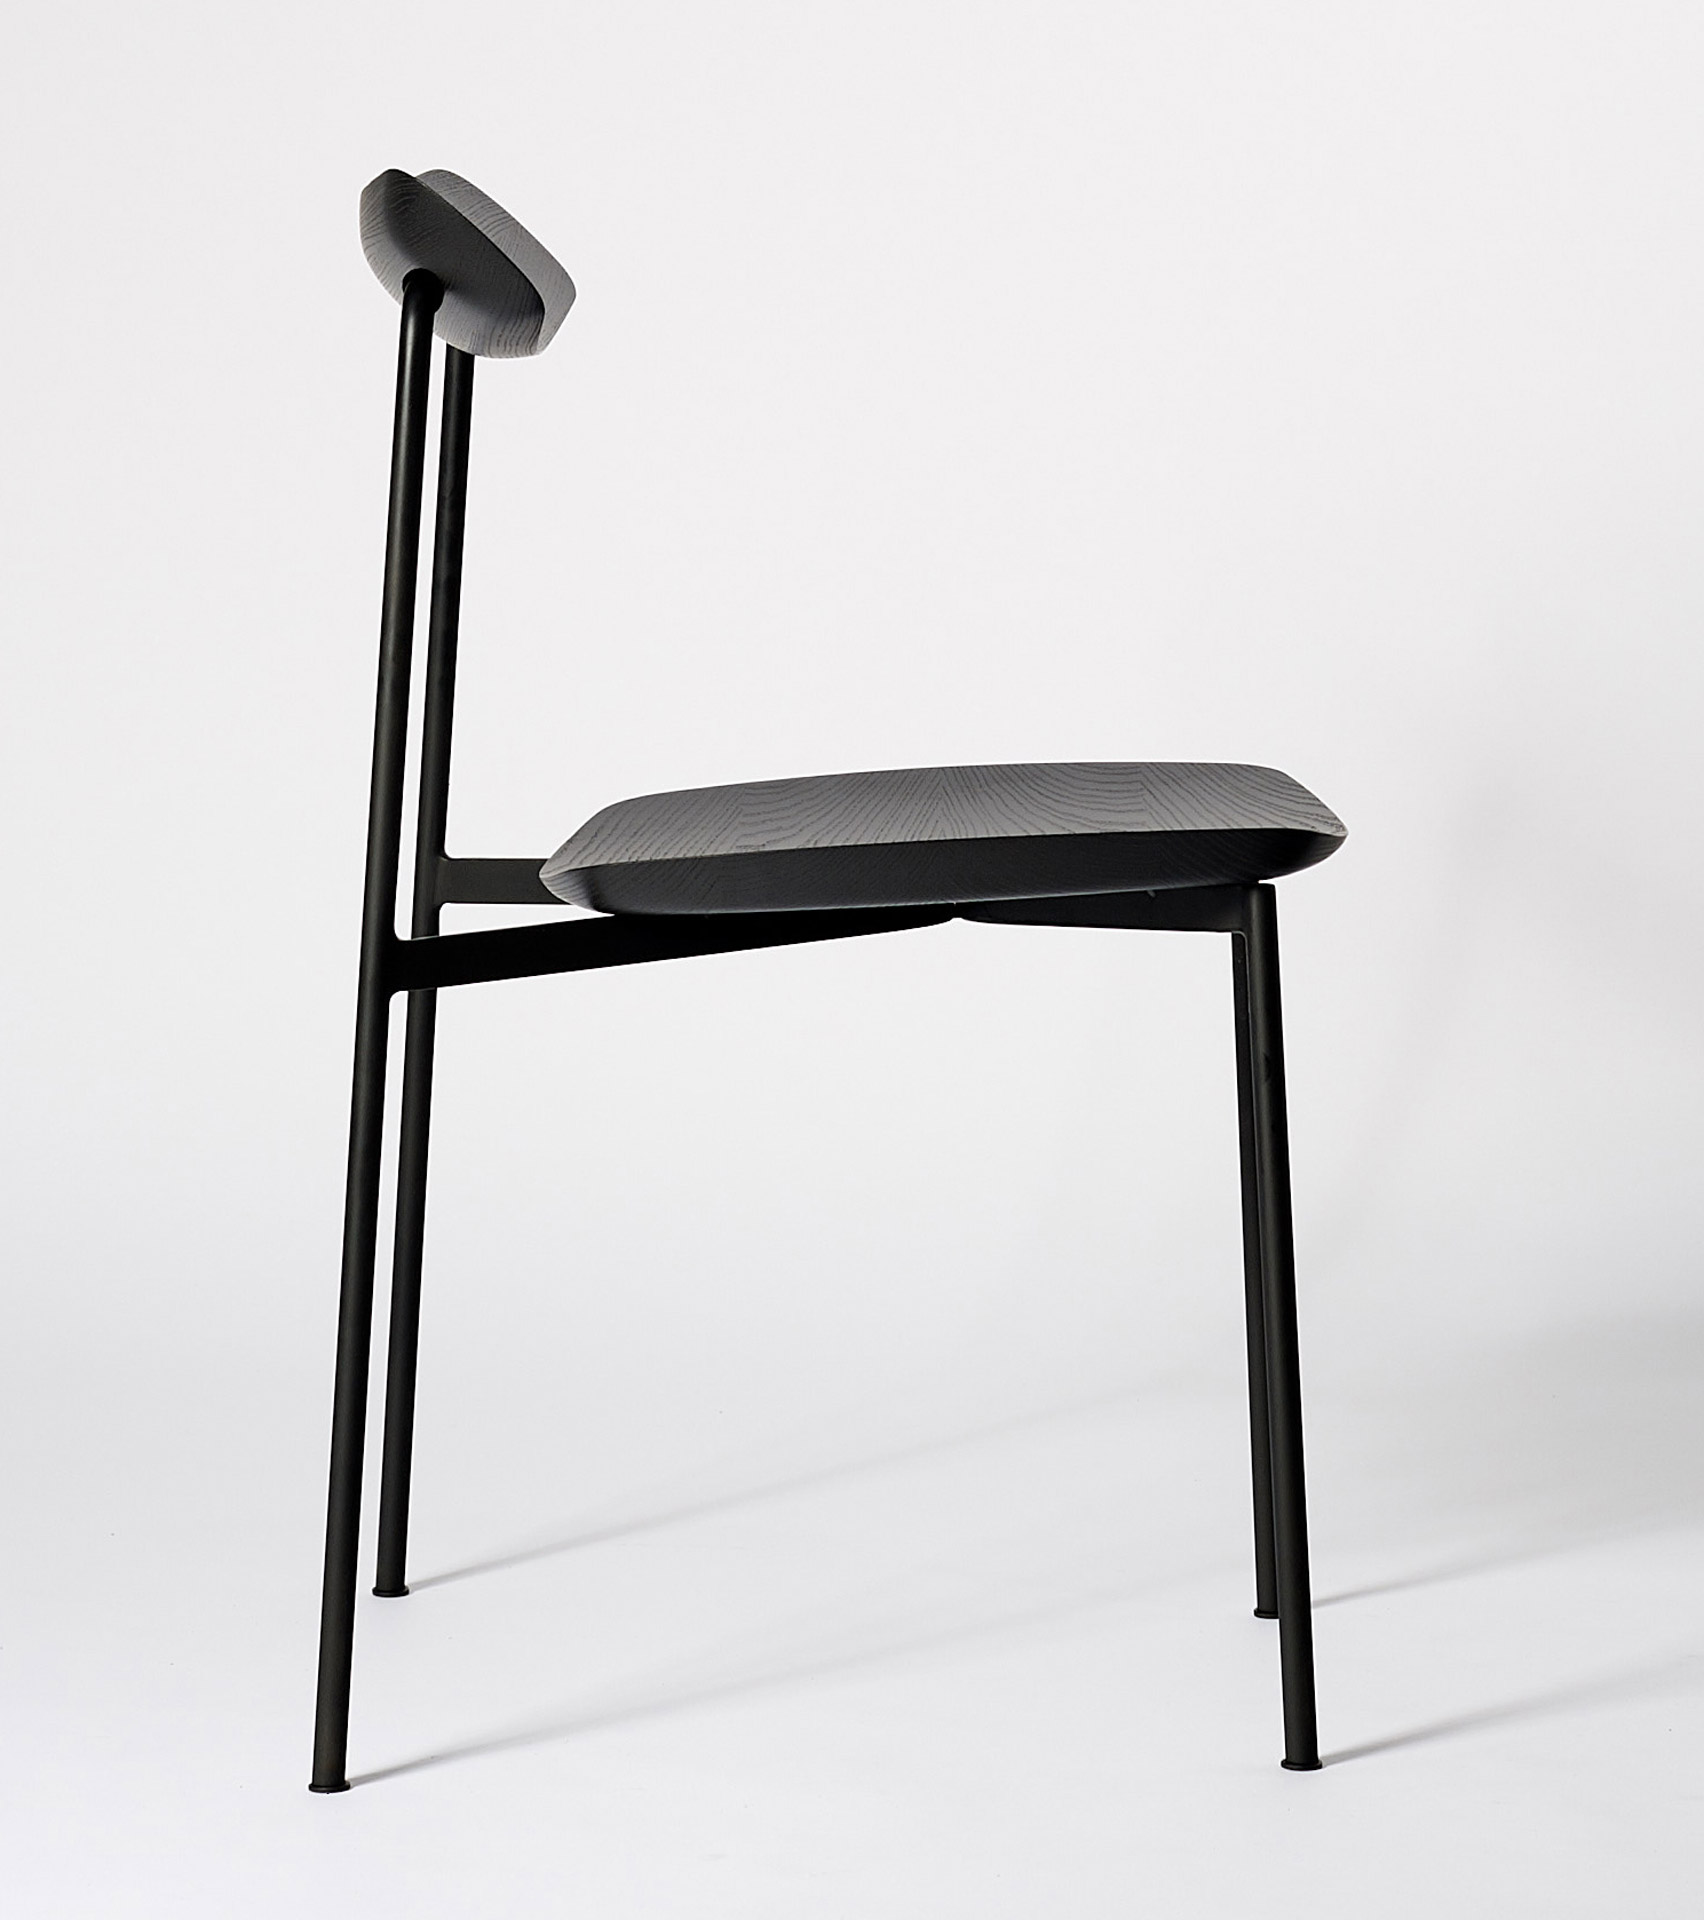 Sia chair by Tom Fereday